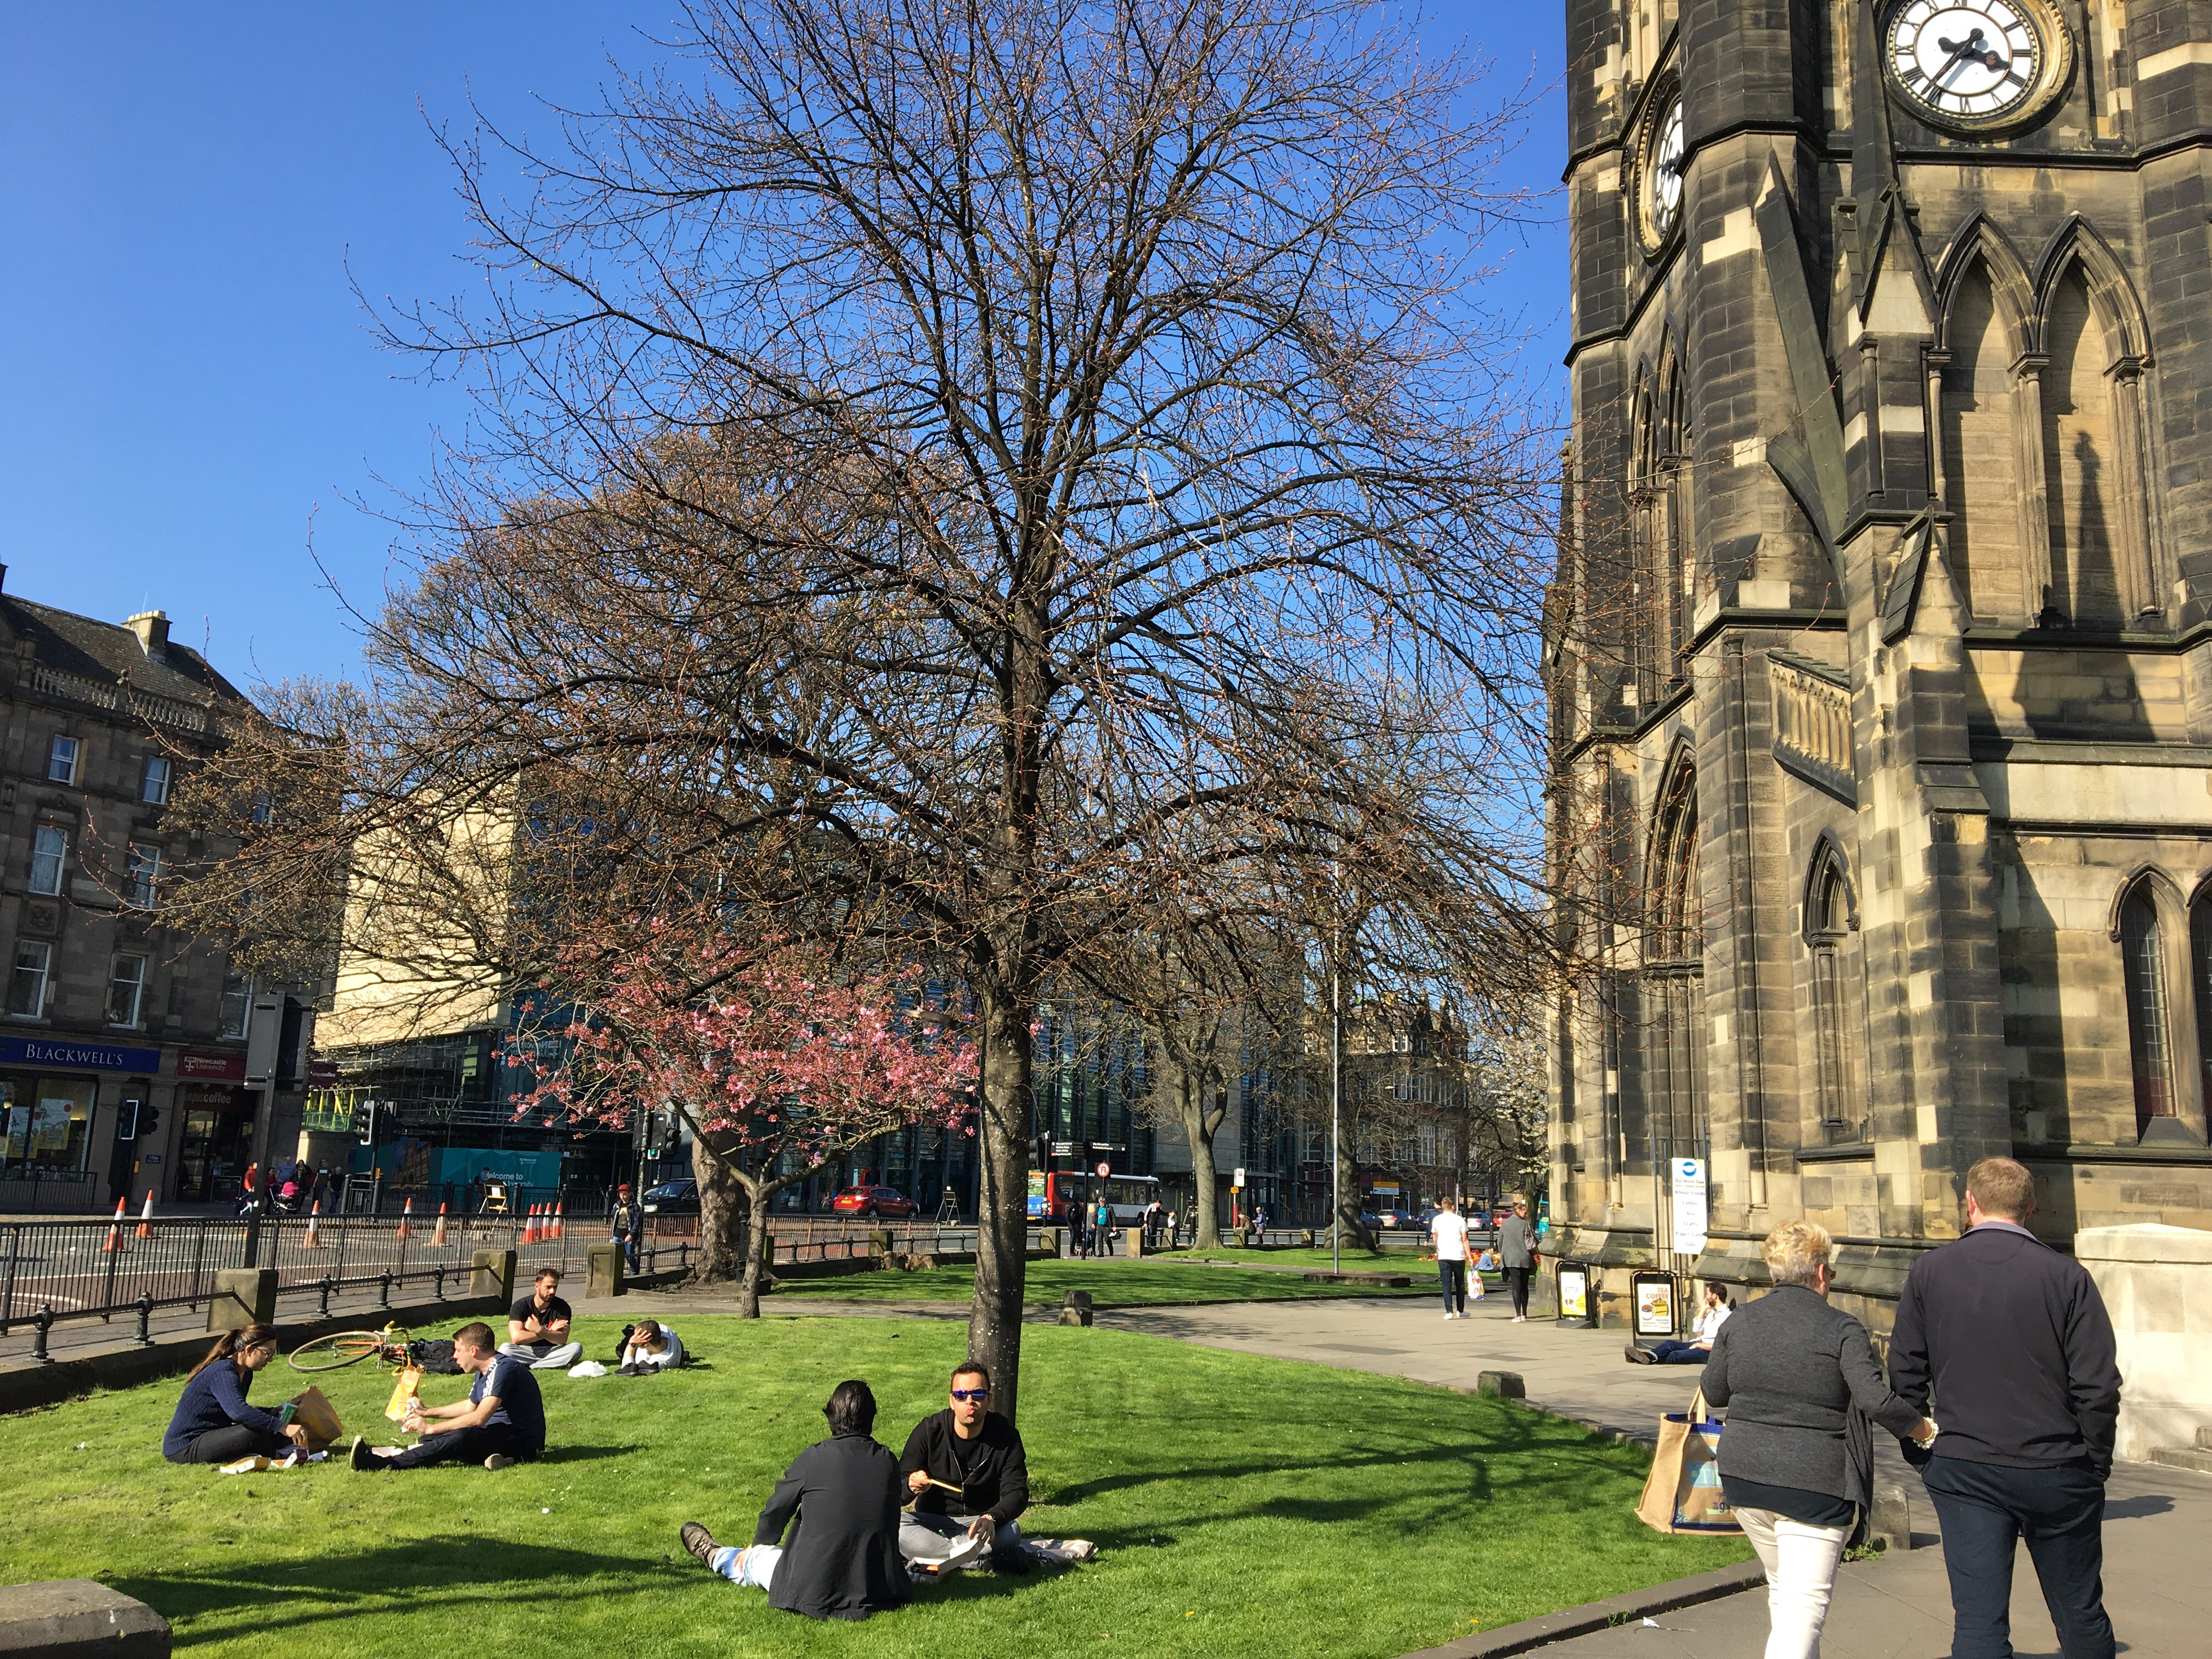 sunny day in Newcastle-upon-Tyne